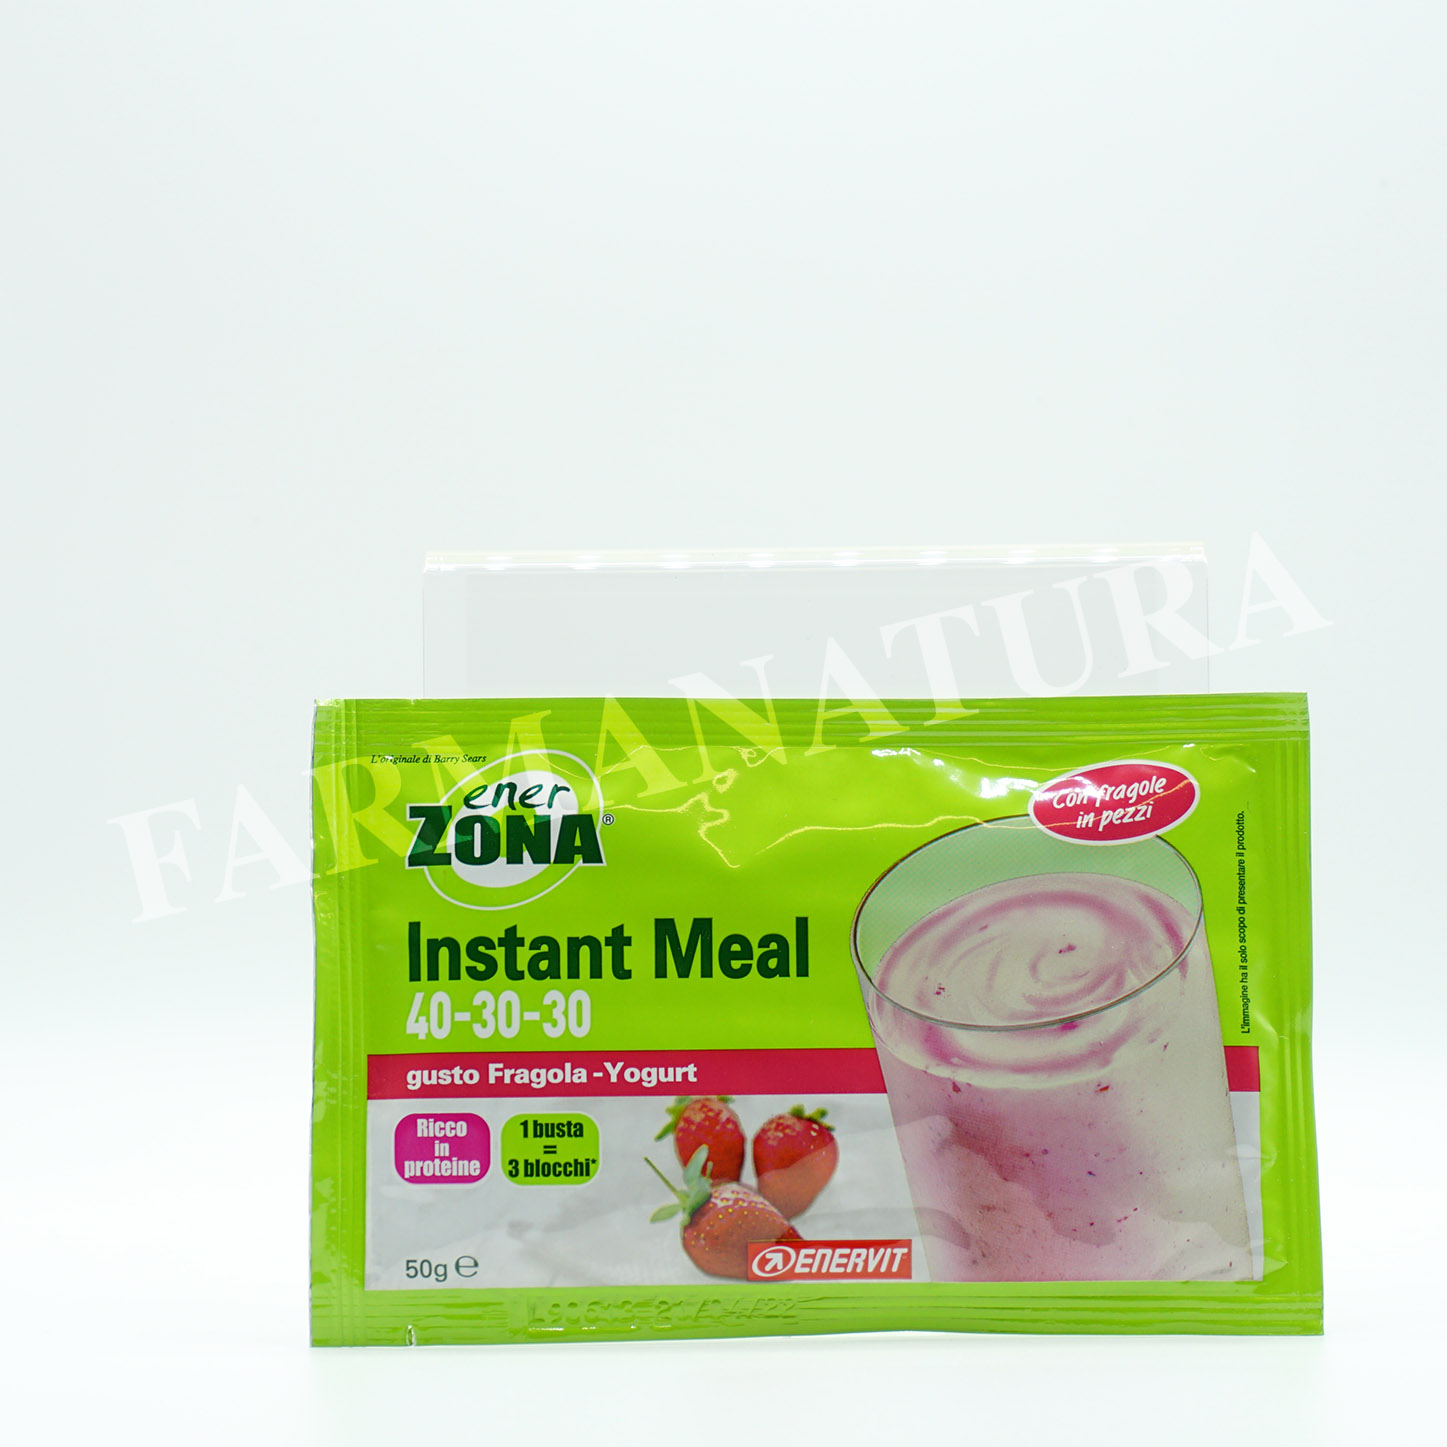 Enerzona Instant Meal 40-30-30 Fragola/Yogurt 50Gr